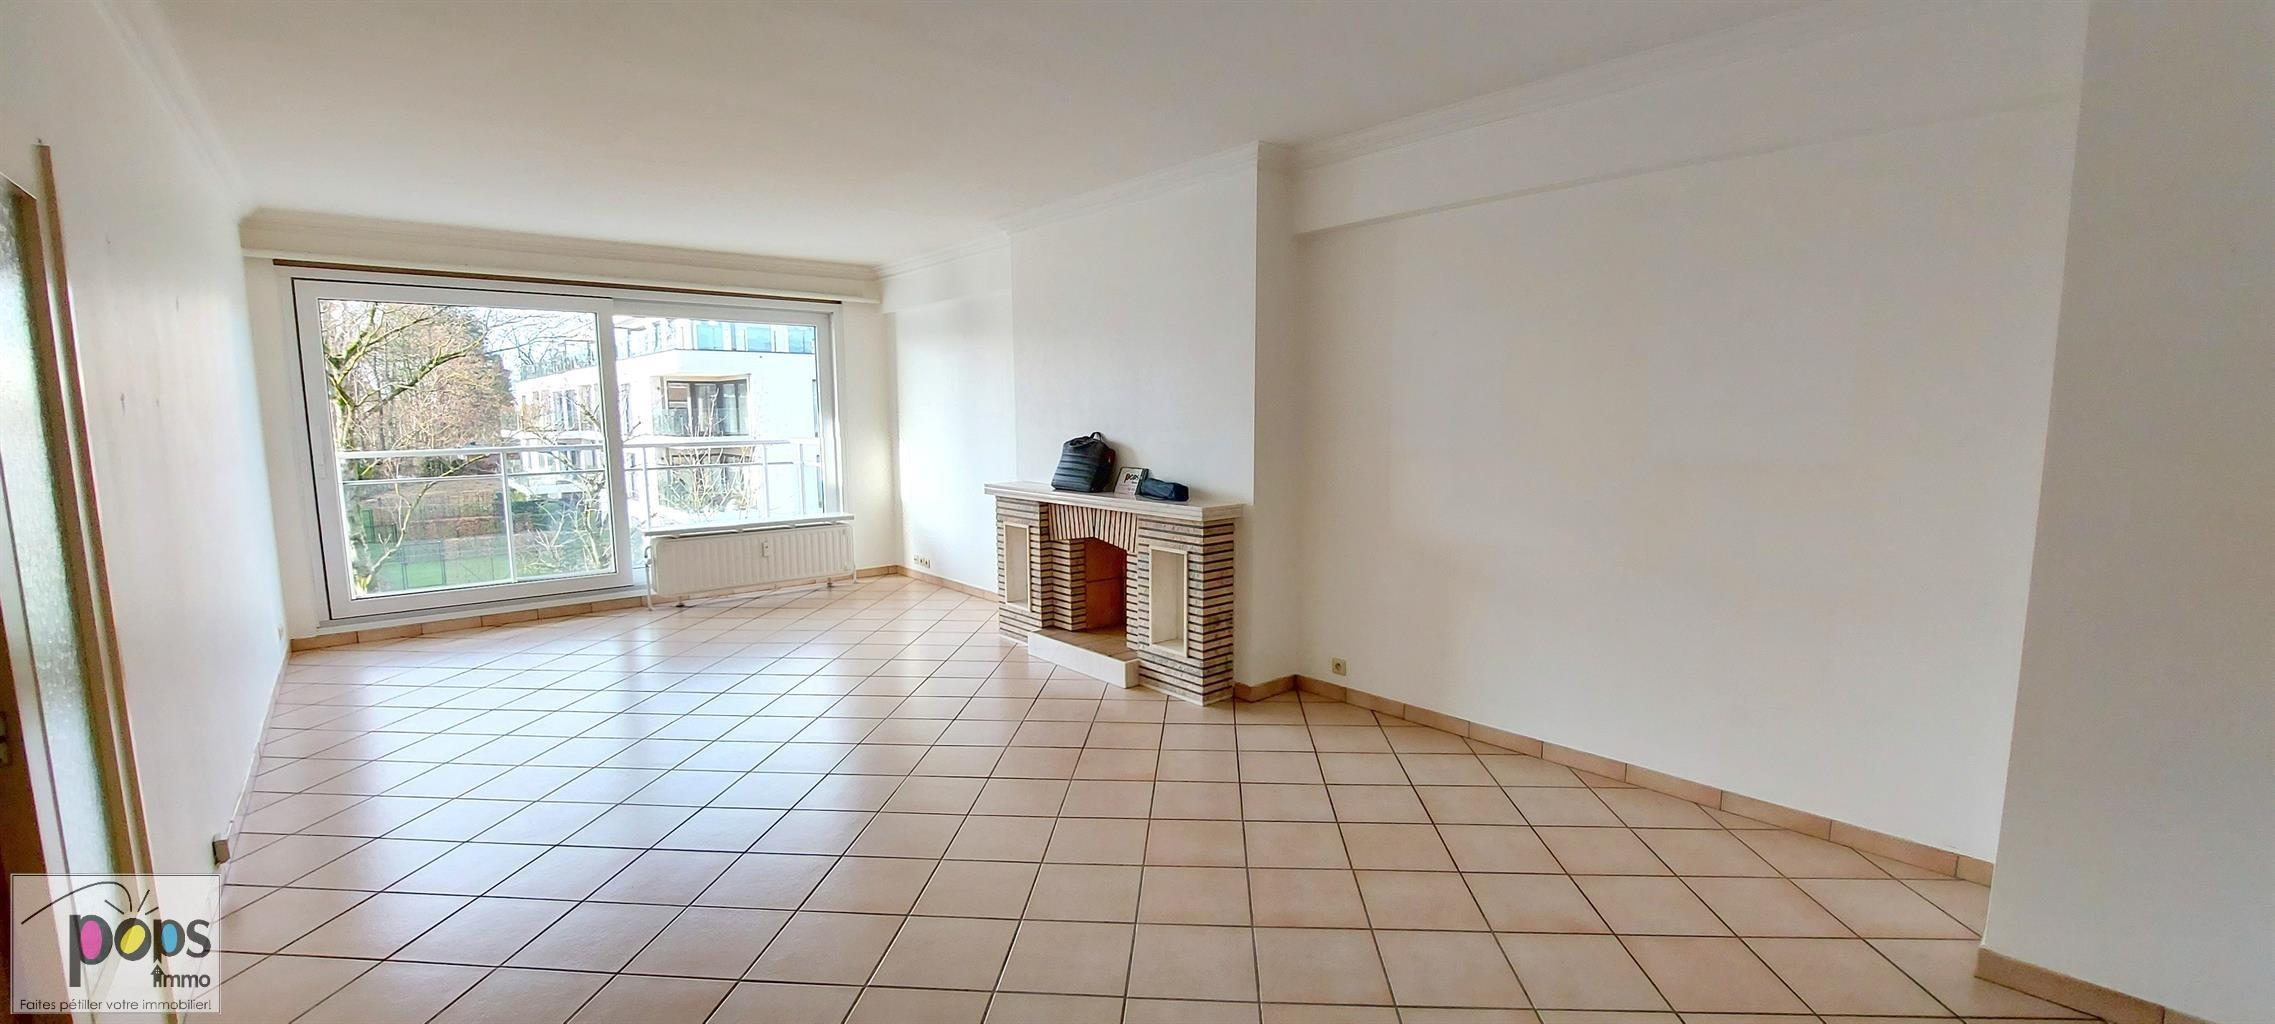 Appartement - Uccle - #4311863-3